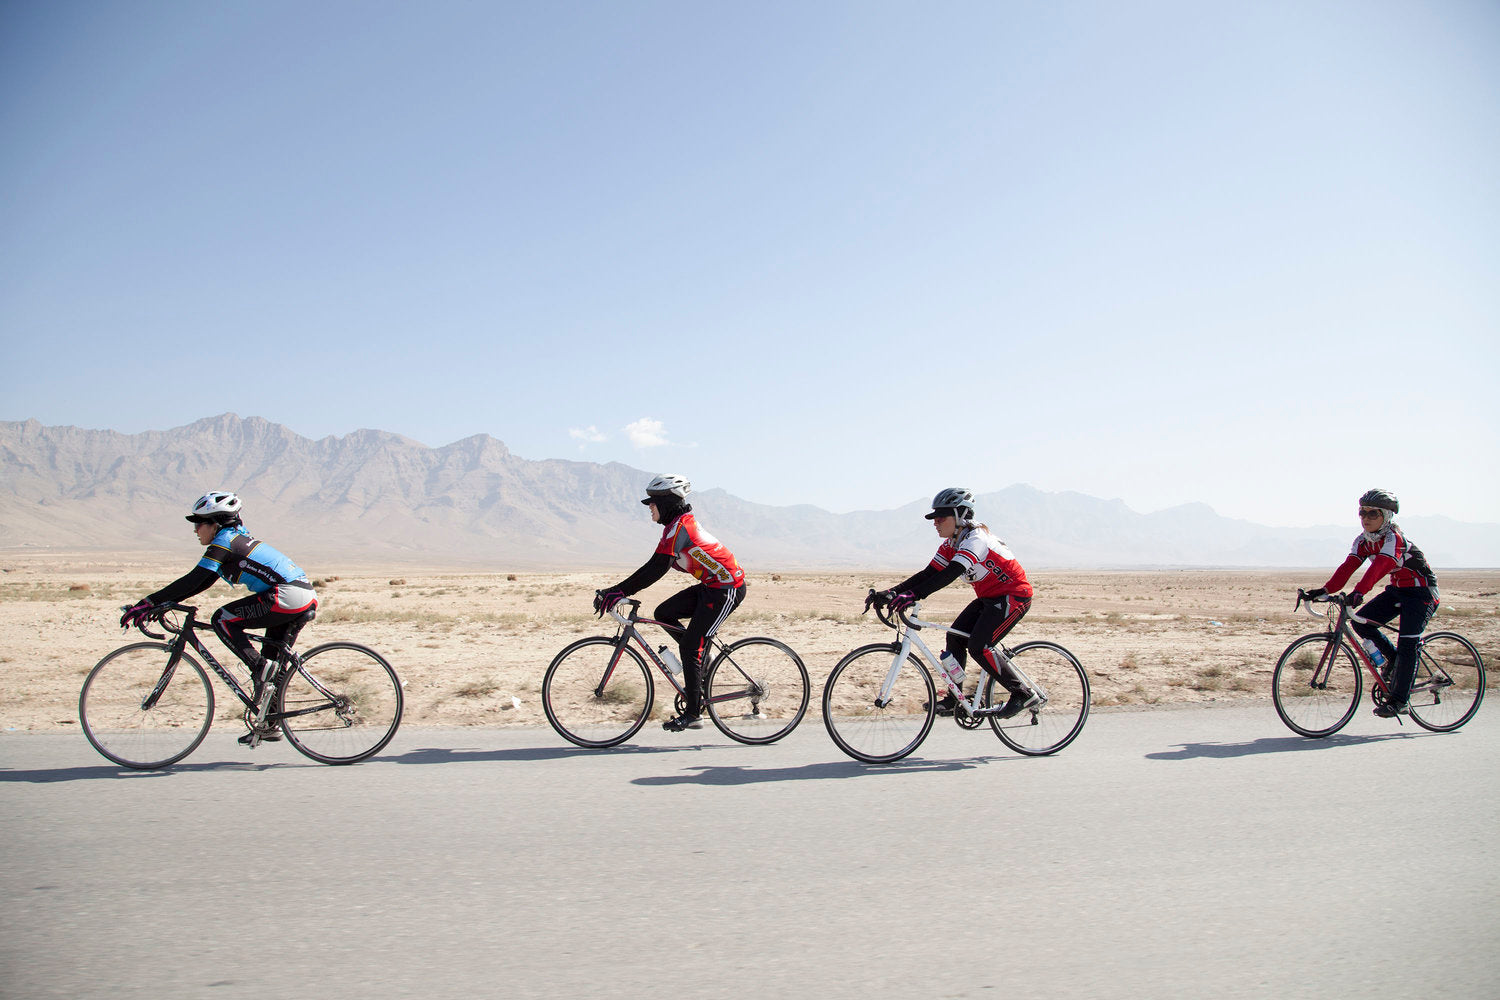 Afghan Cycles — Change On Two Wheels